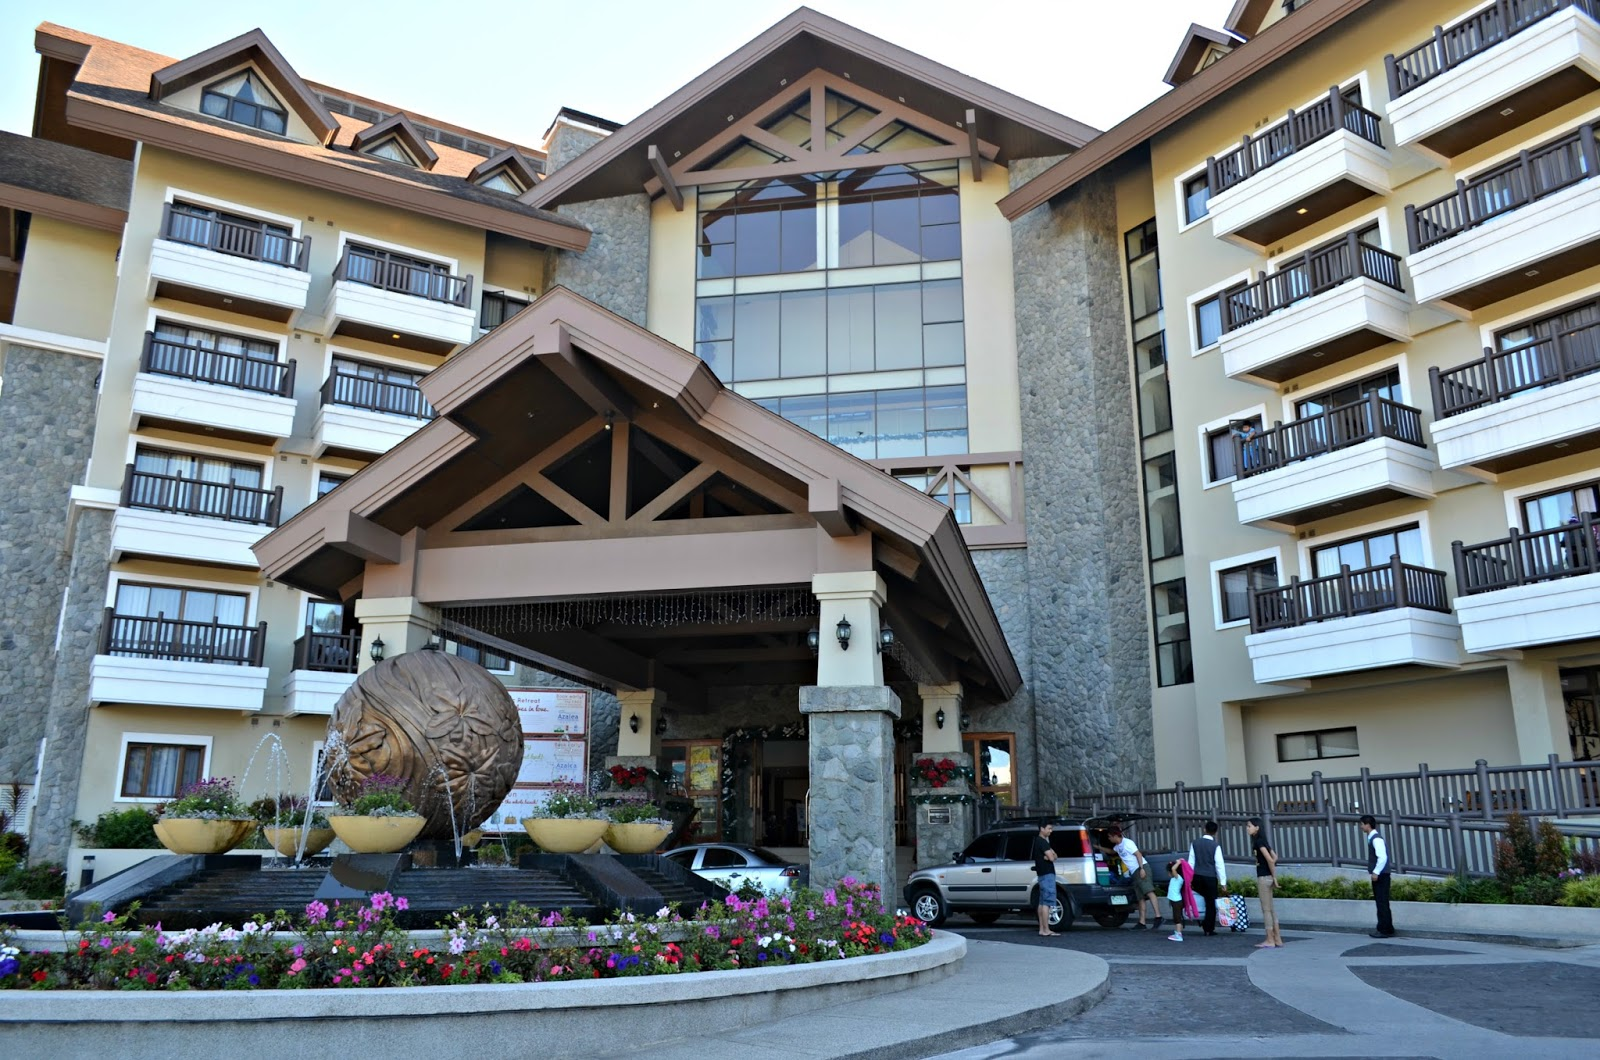 Azalea Hotels Residences In Baguio City Famous Vacation Hotel The Philippines